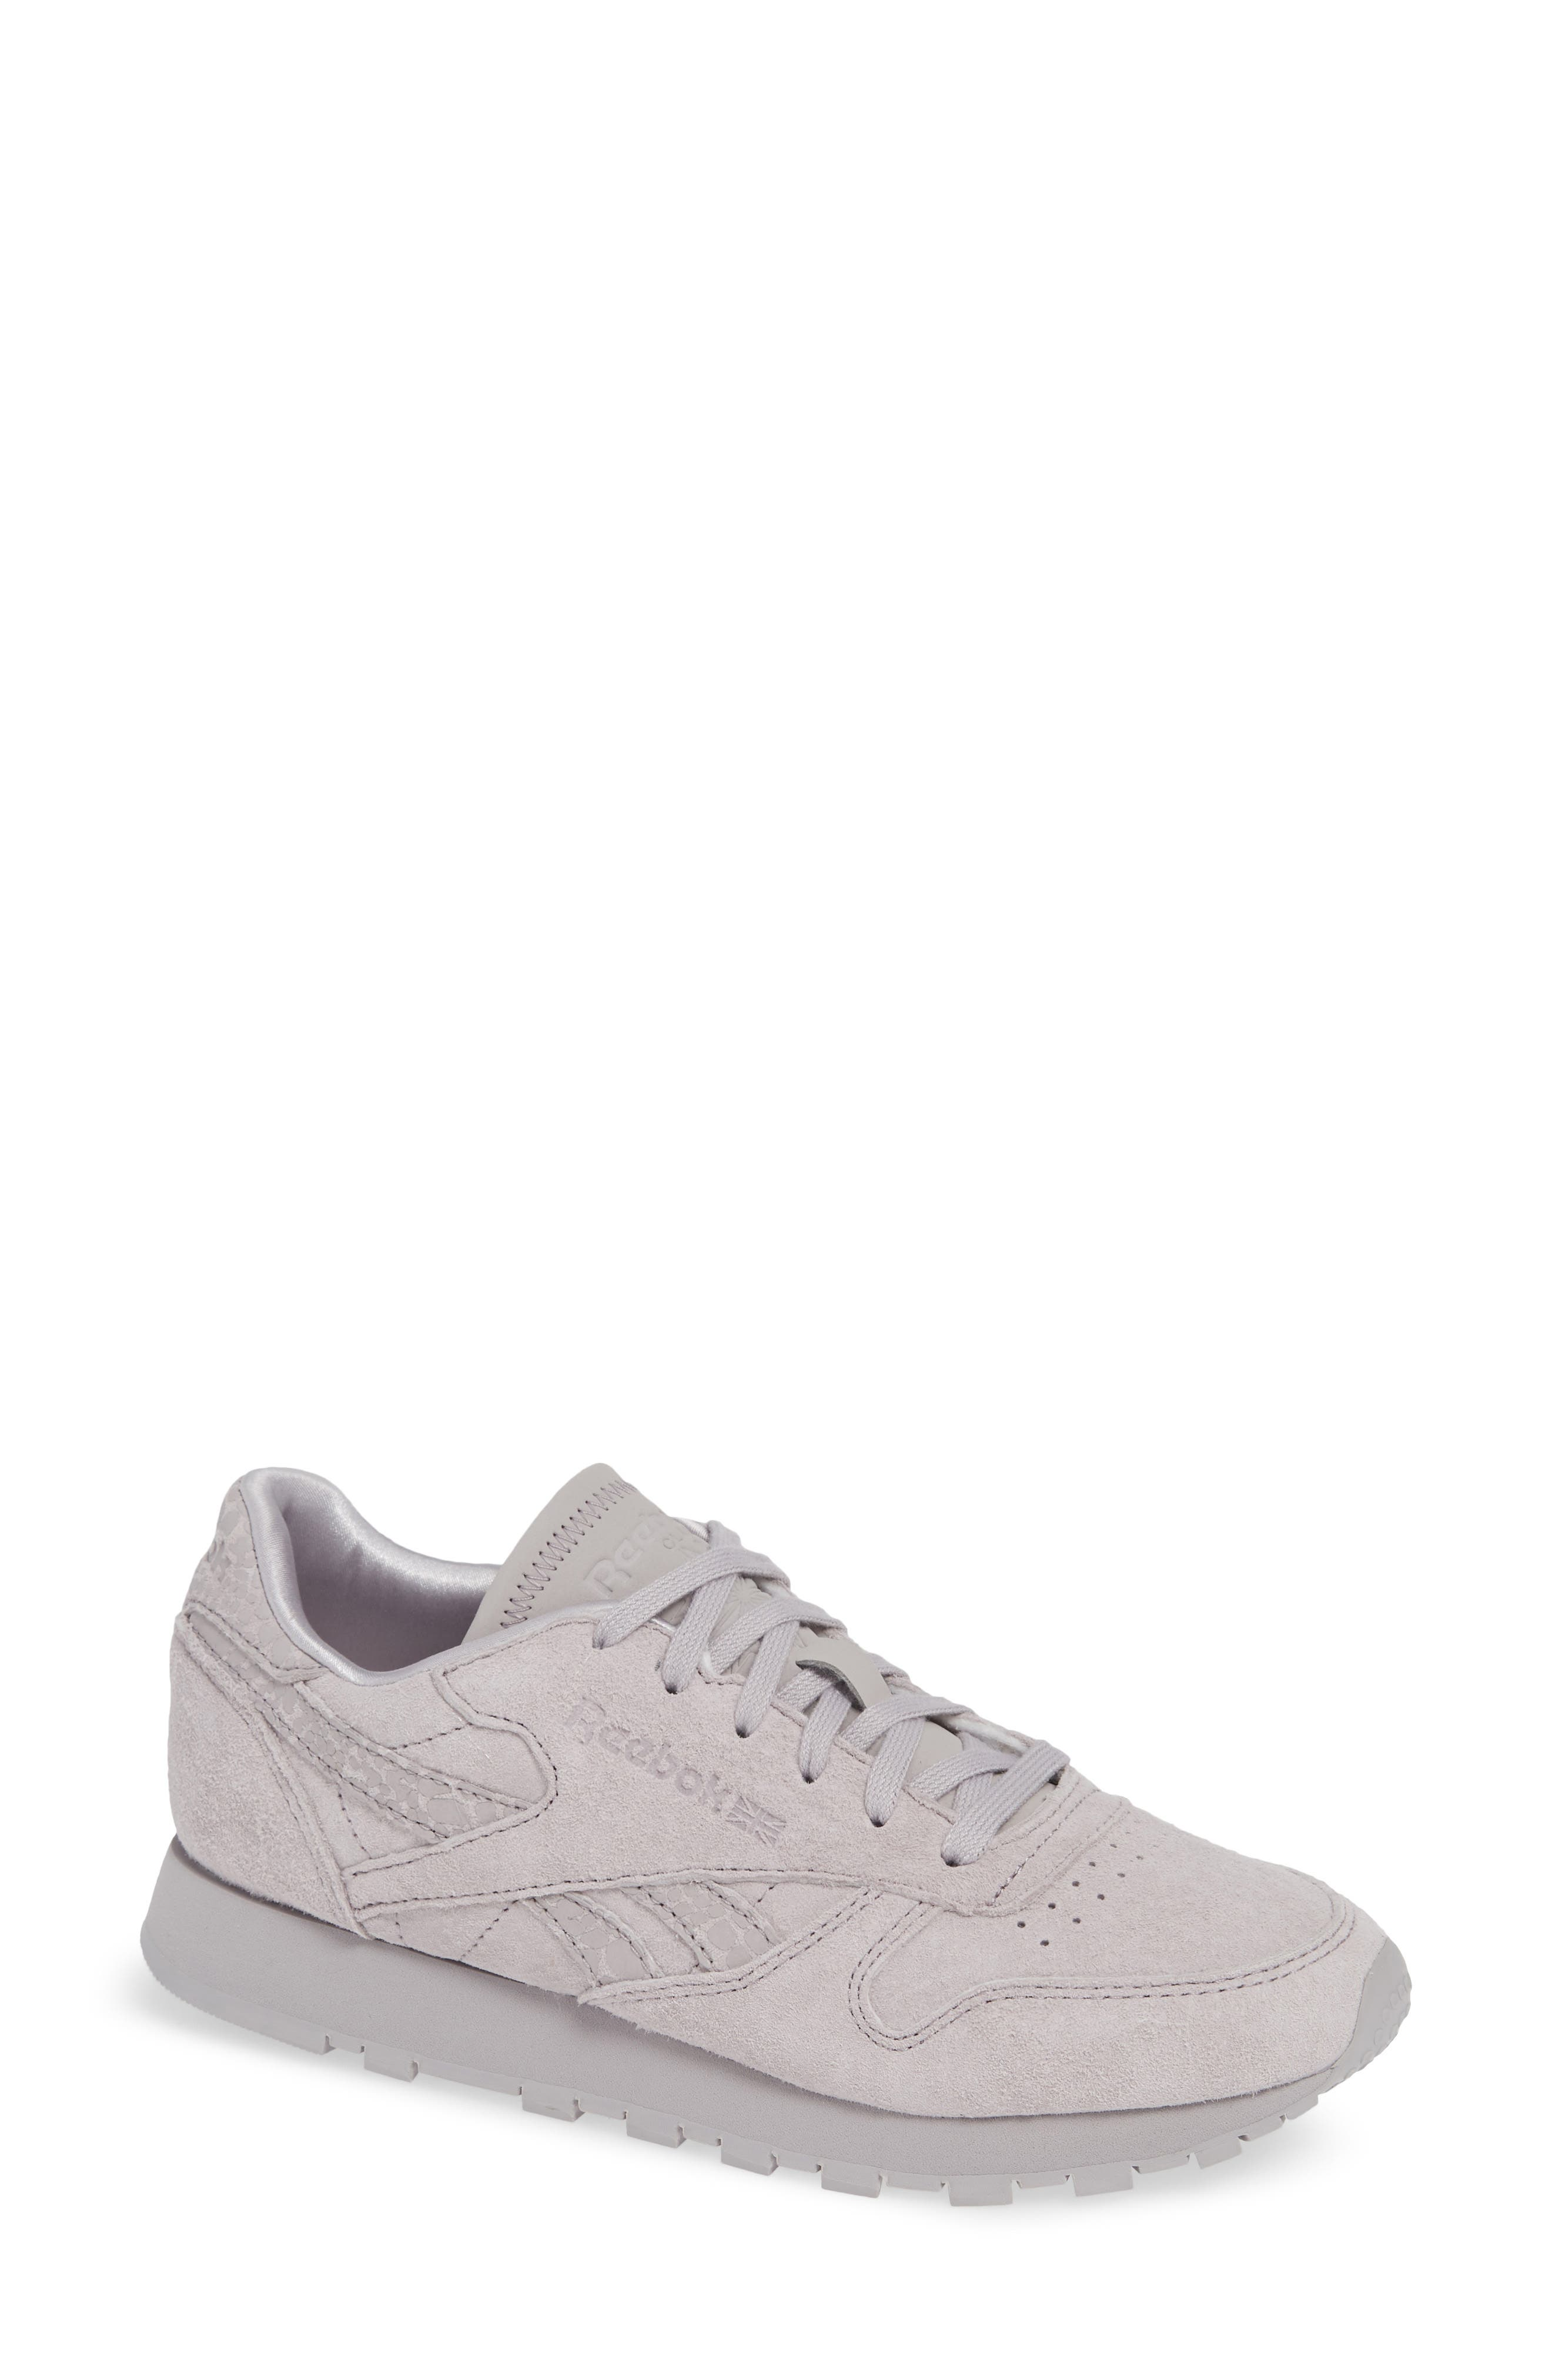 REEBOK Classic Leather Sneaker, Main, color, WHISPER GREY